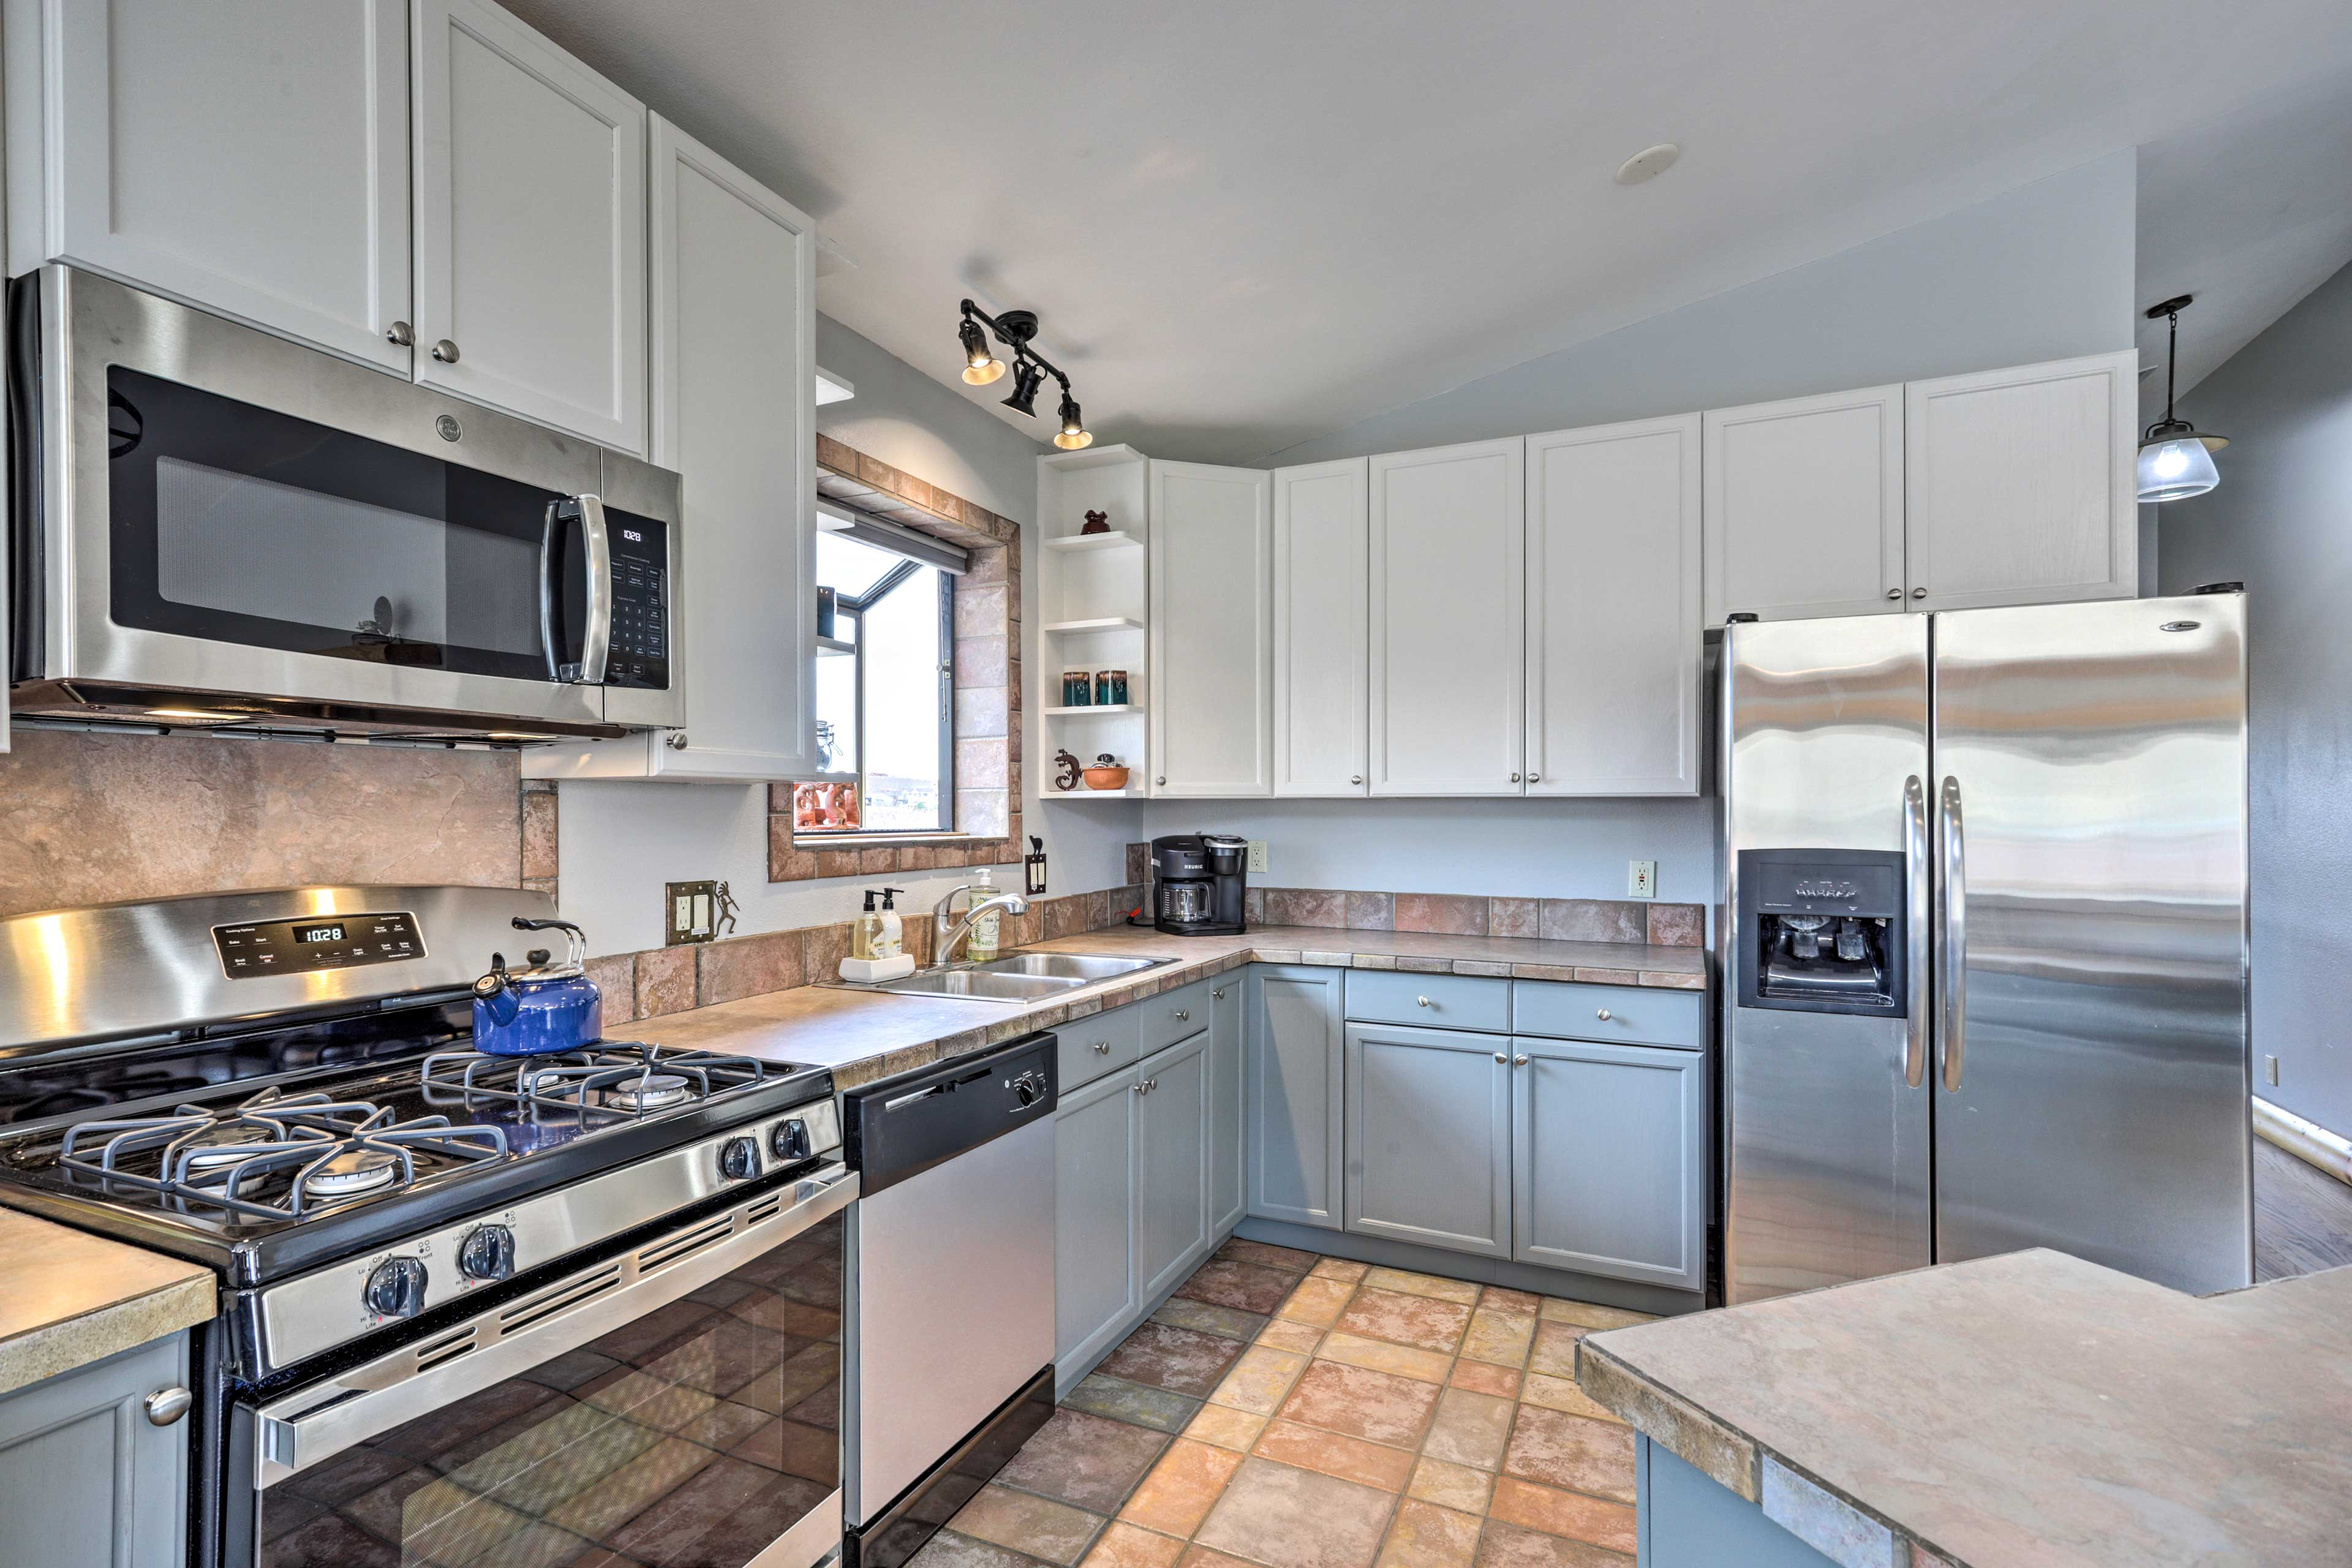 From coffee maker to cooking basics, this kitchen ensures you have it all.